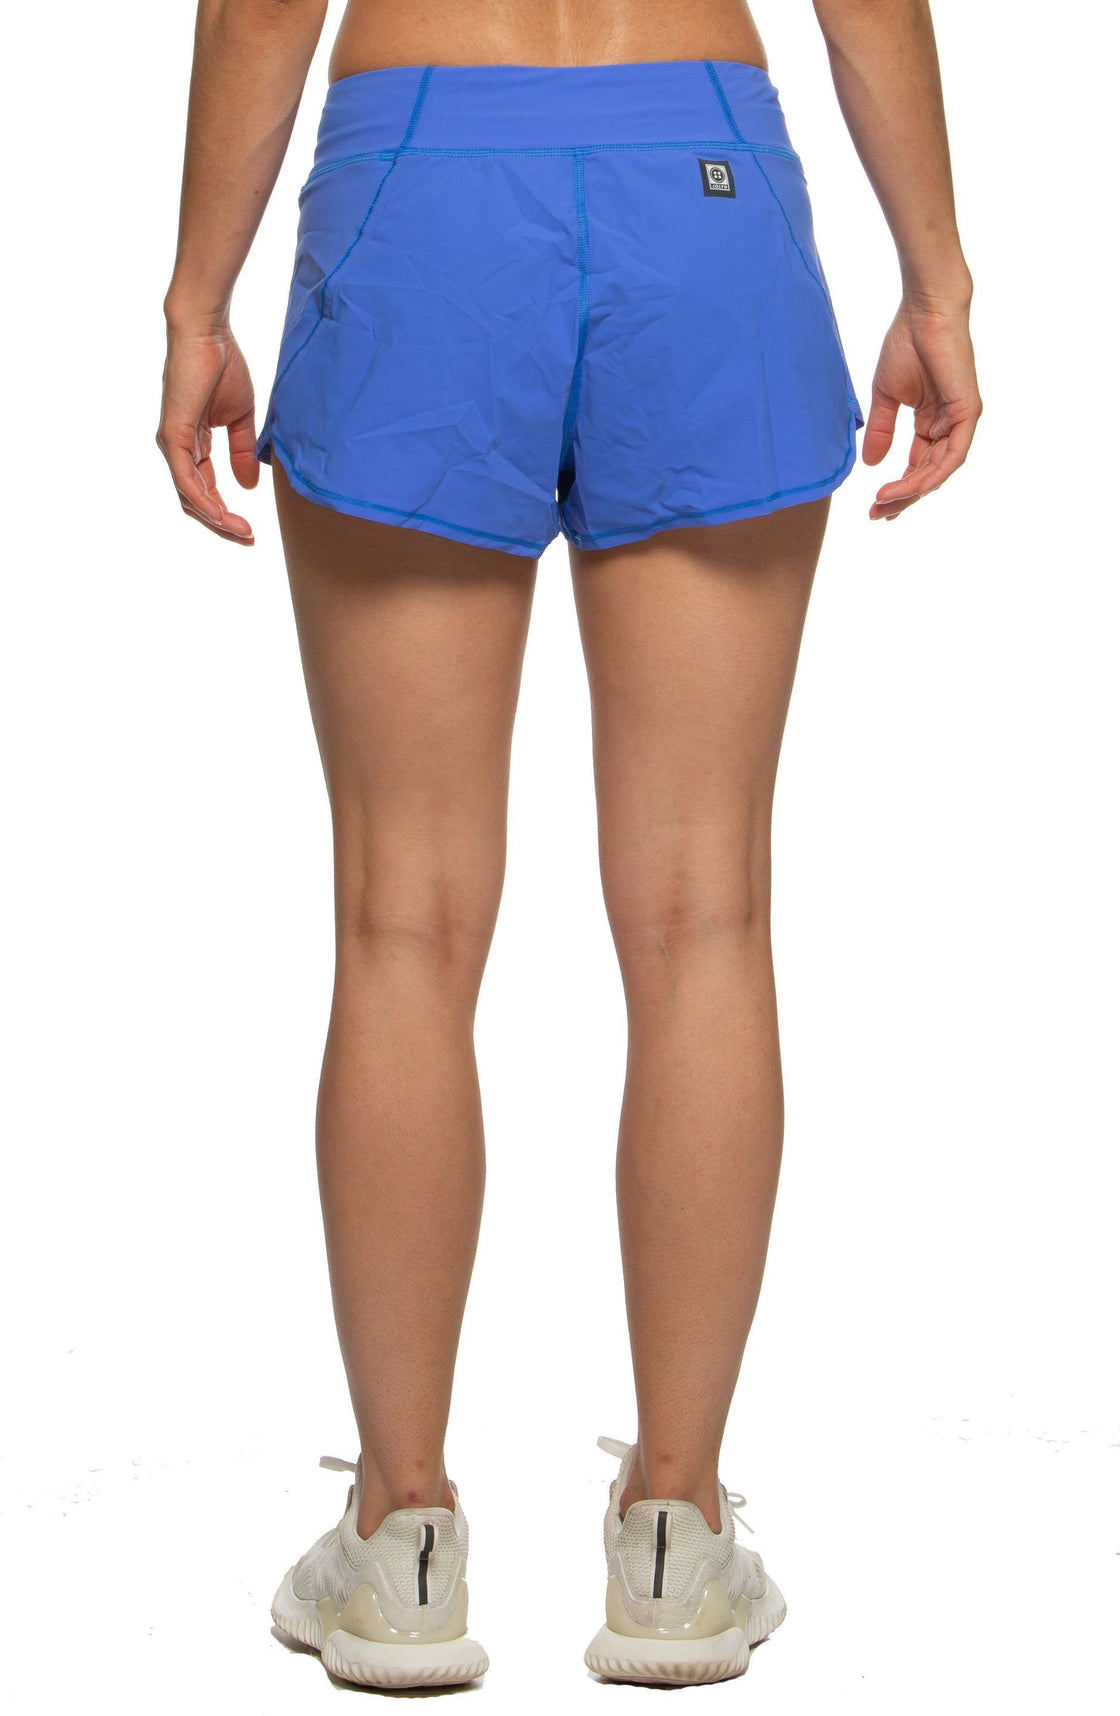 Hewson Run Short - Periwinkle